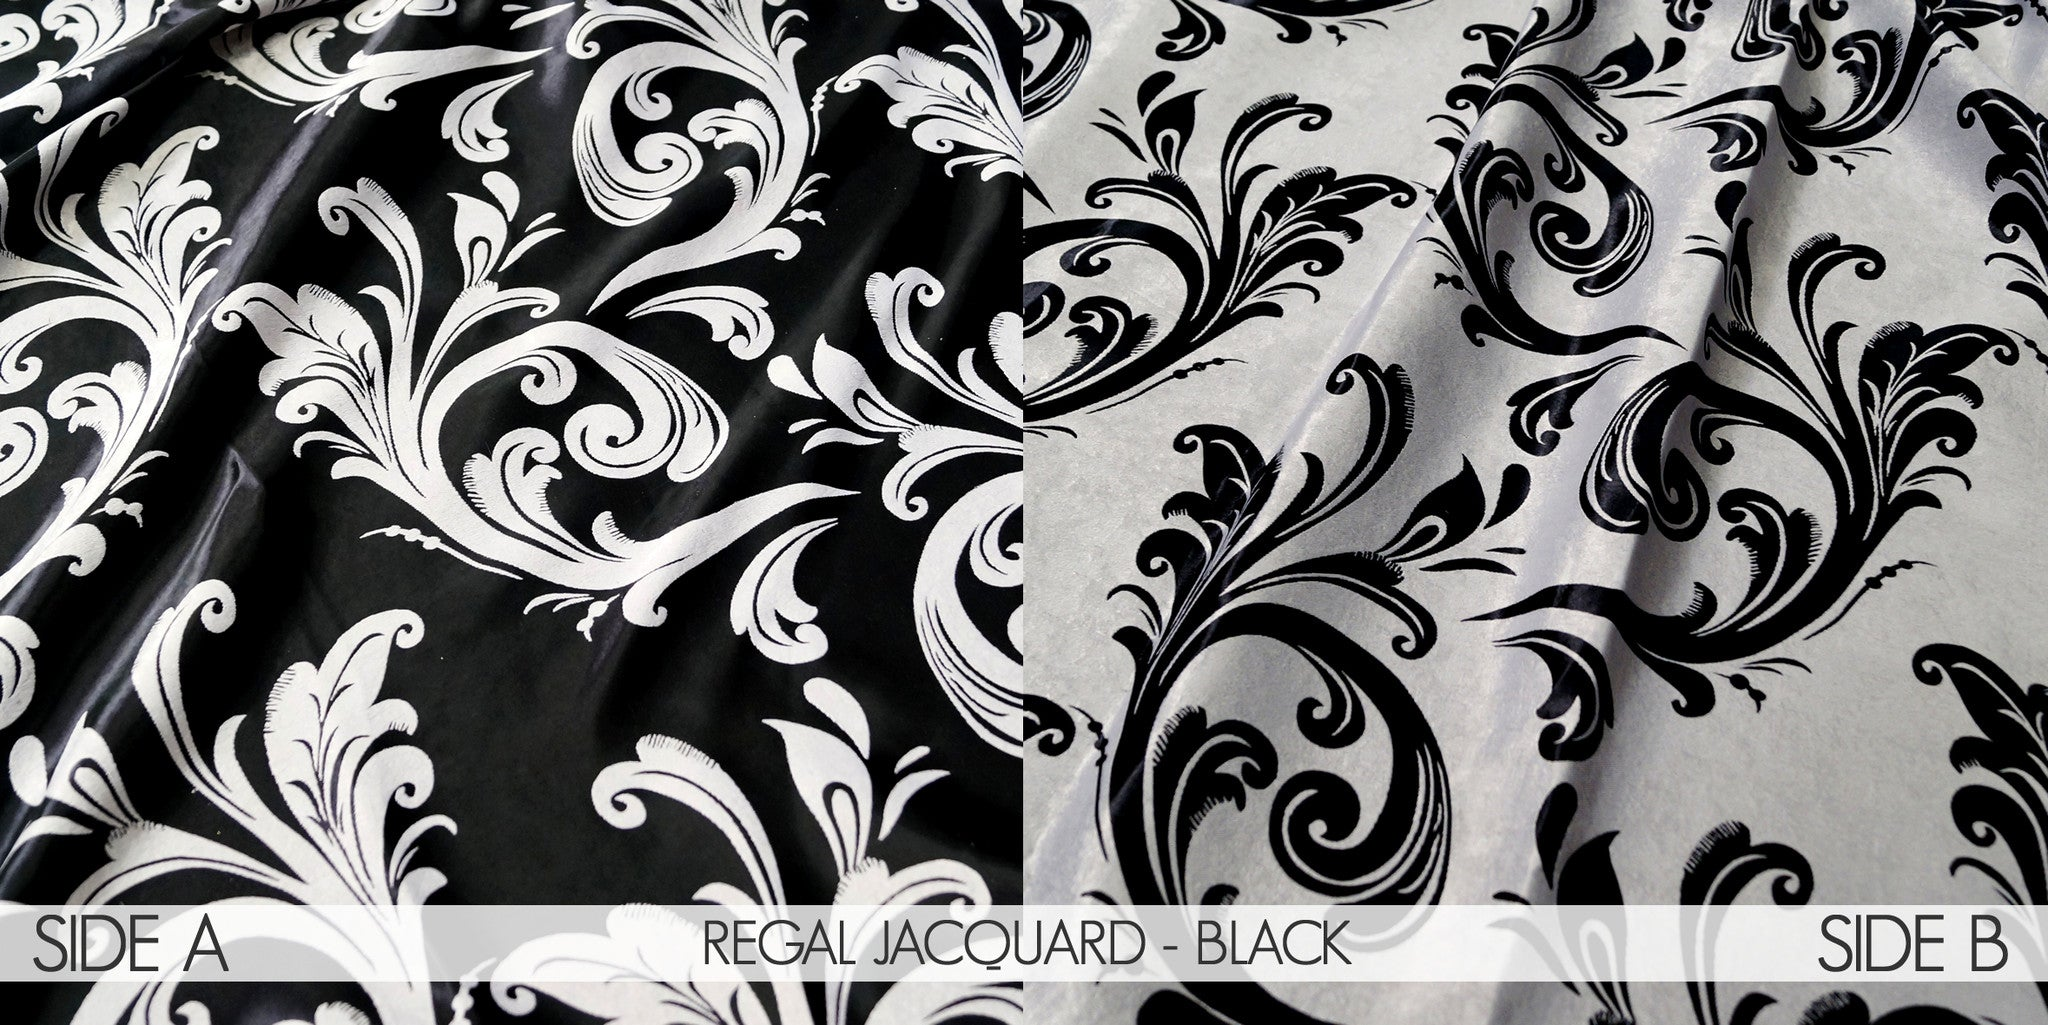 REGAL JACQUARD - BLACK